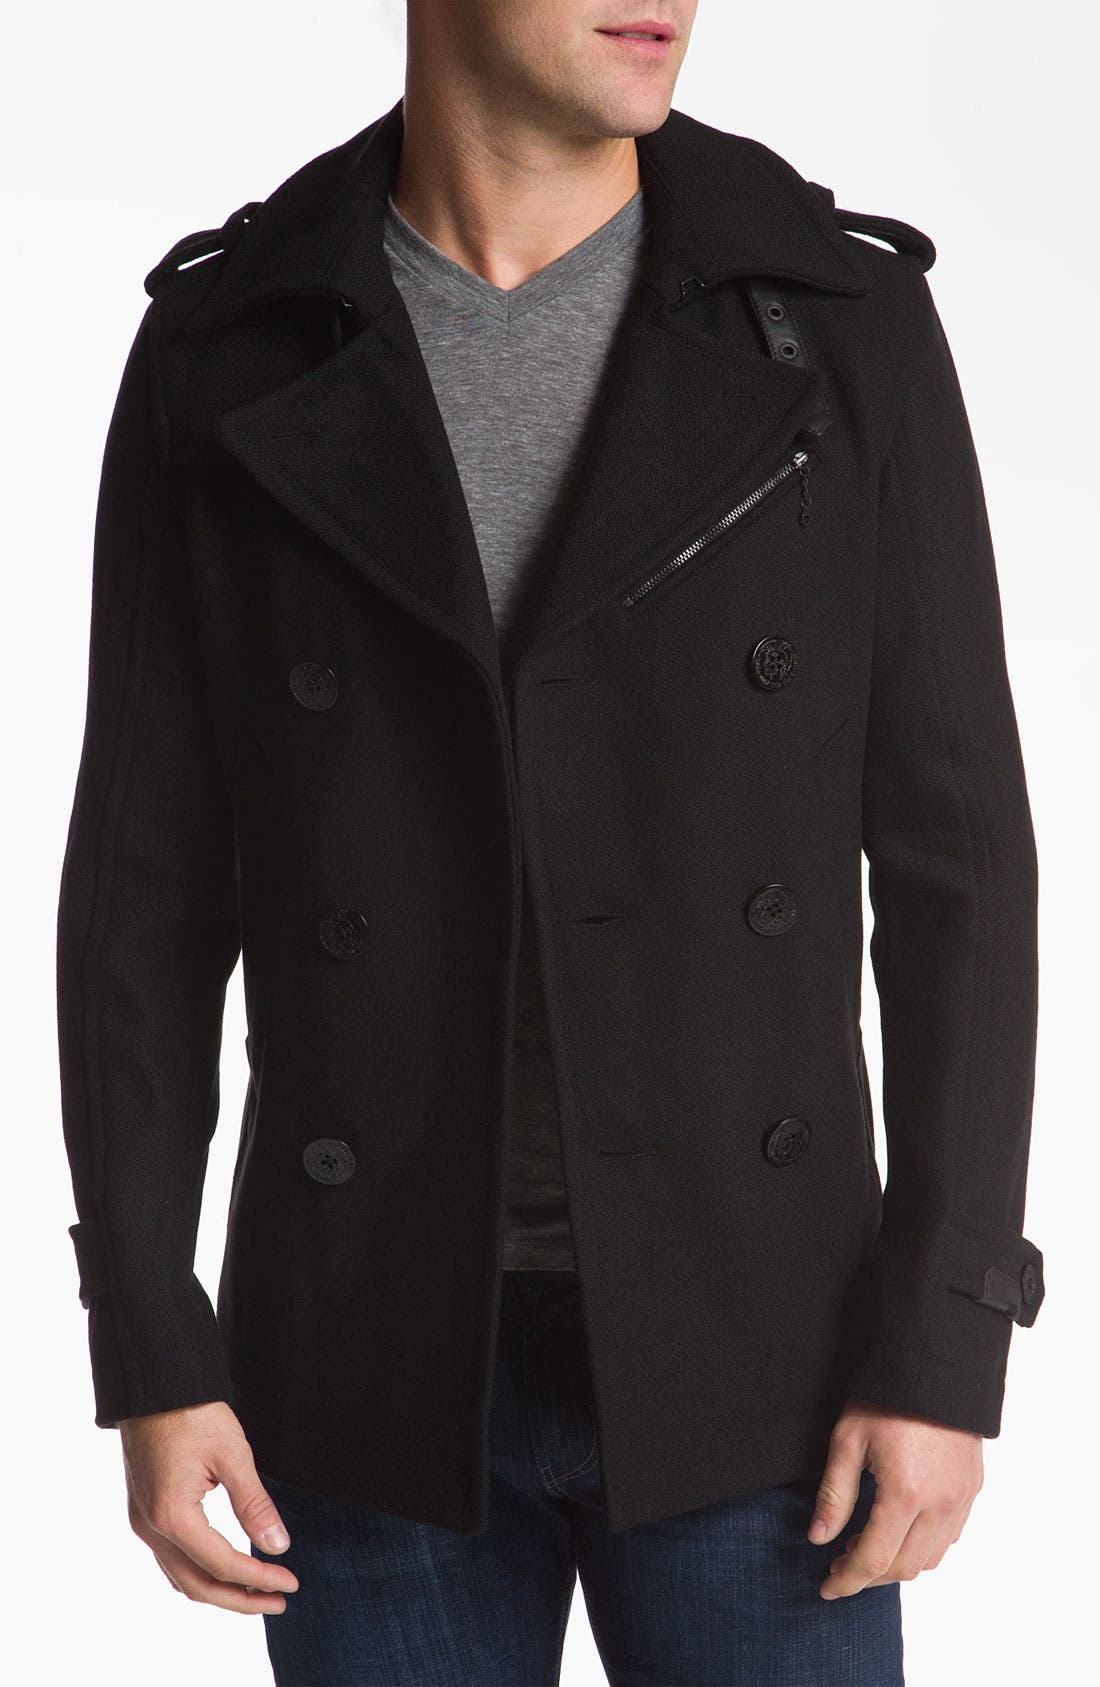 'Wittory' Double Breasted Peacoat,                         Main,                         color, Black